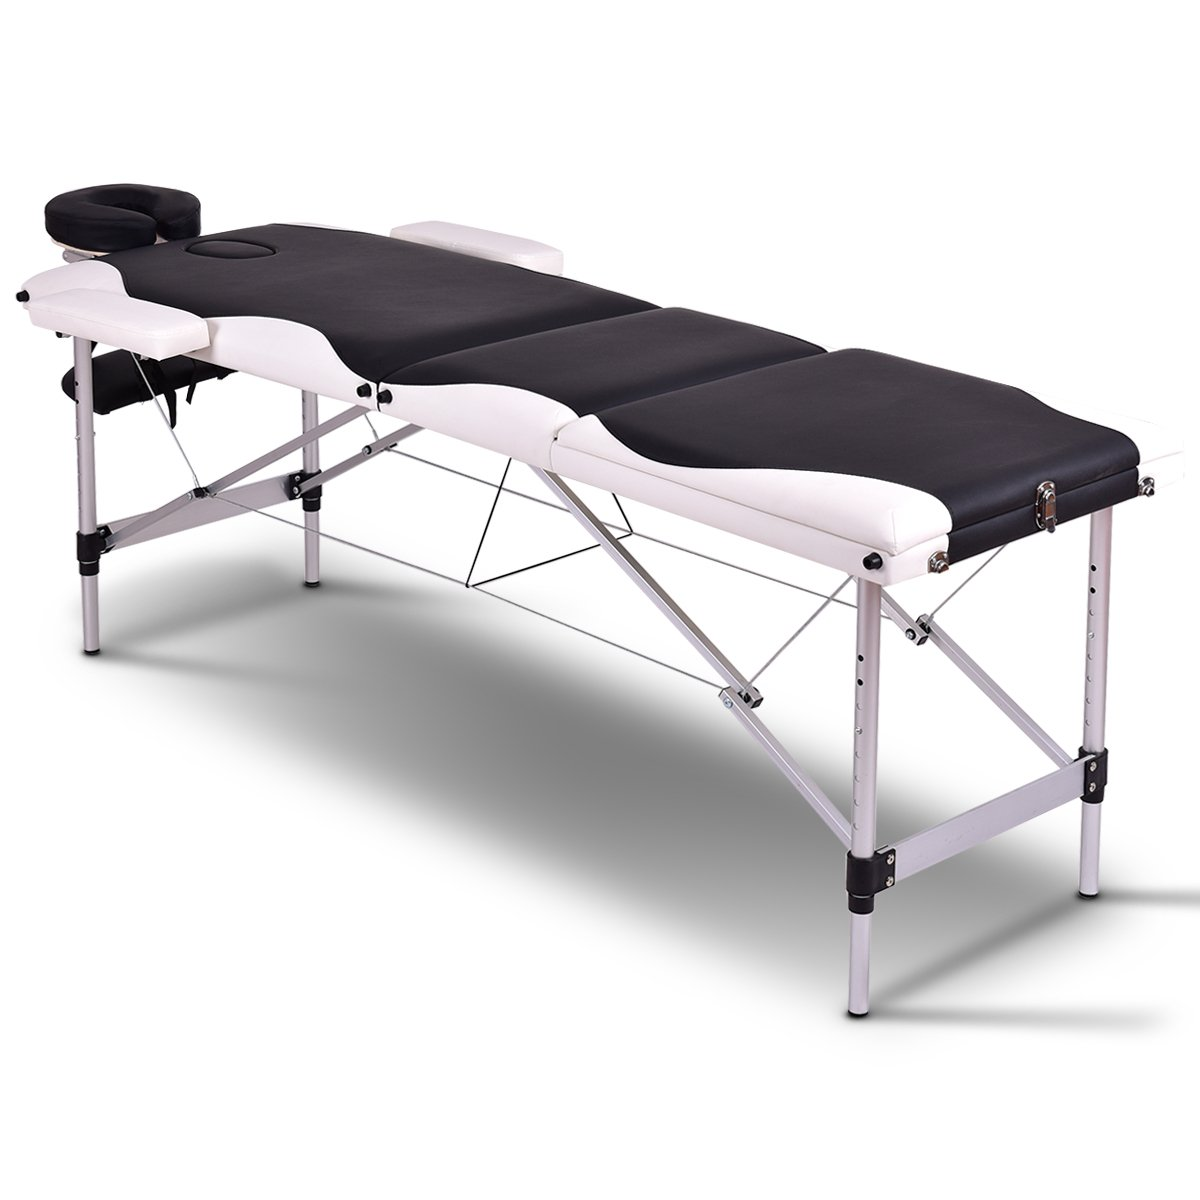 Giantex 72L 2 Section Portable Massage Table Aluminum Facial SPA Bed Tattoo w/Free Carry Case, Black